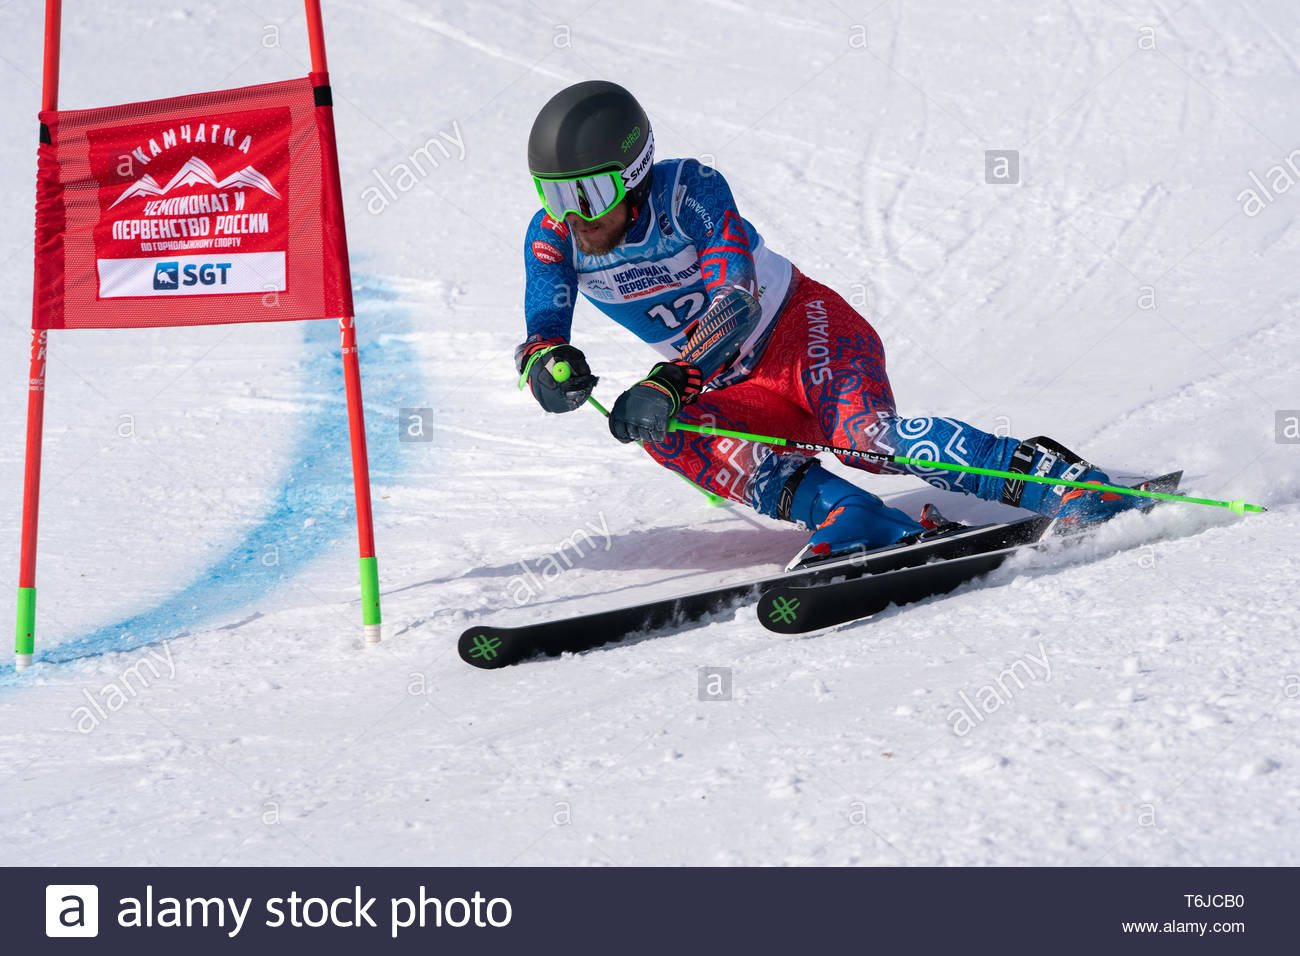 MOROZNAYA MOUNTAIN, KAMCHATKA PENINSULA, RUSSIAN FAR EAST - APR 1, 2019: Mountain skier Matej Falat (Slovakia) skiing down mountain slope. Internation - Stock Image